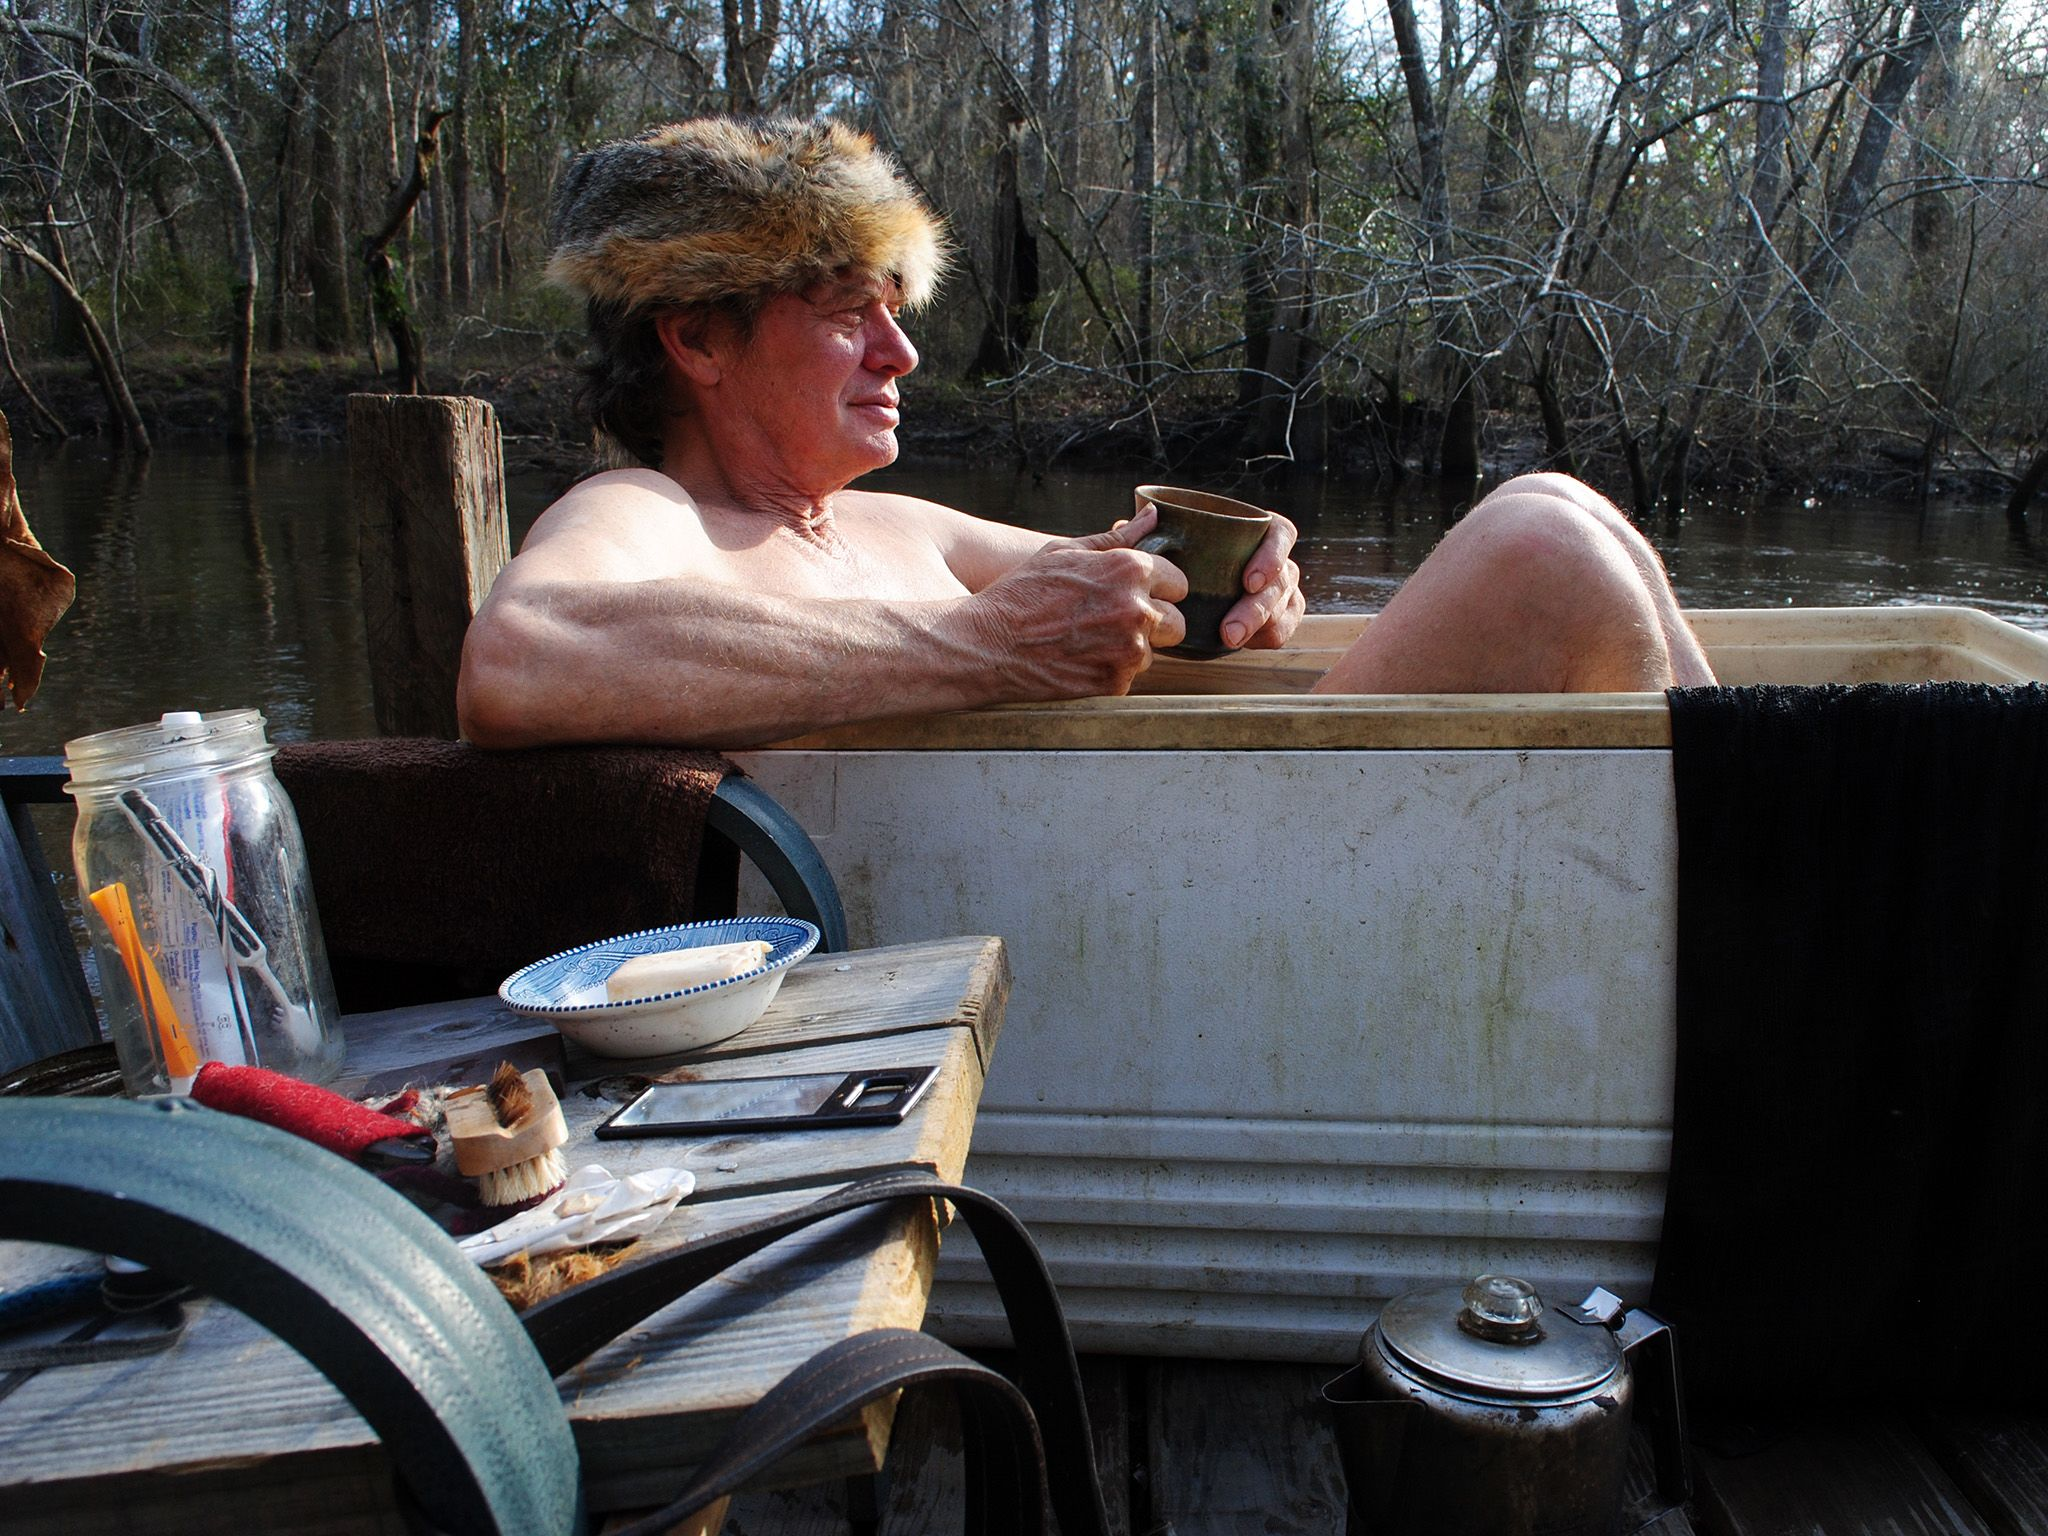 Valdosta, GA, USA: Colbert relaxes in his homemade bath tub. This image is from Live Free or Die. [Photo of the day - دسامبر 2014]